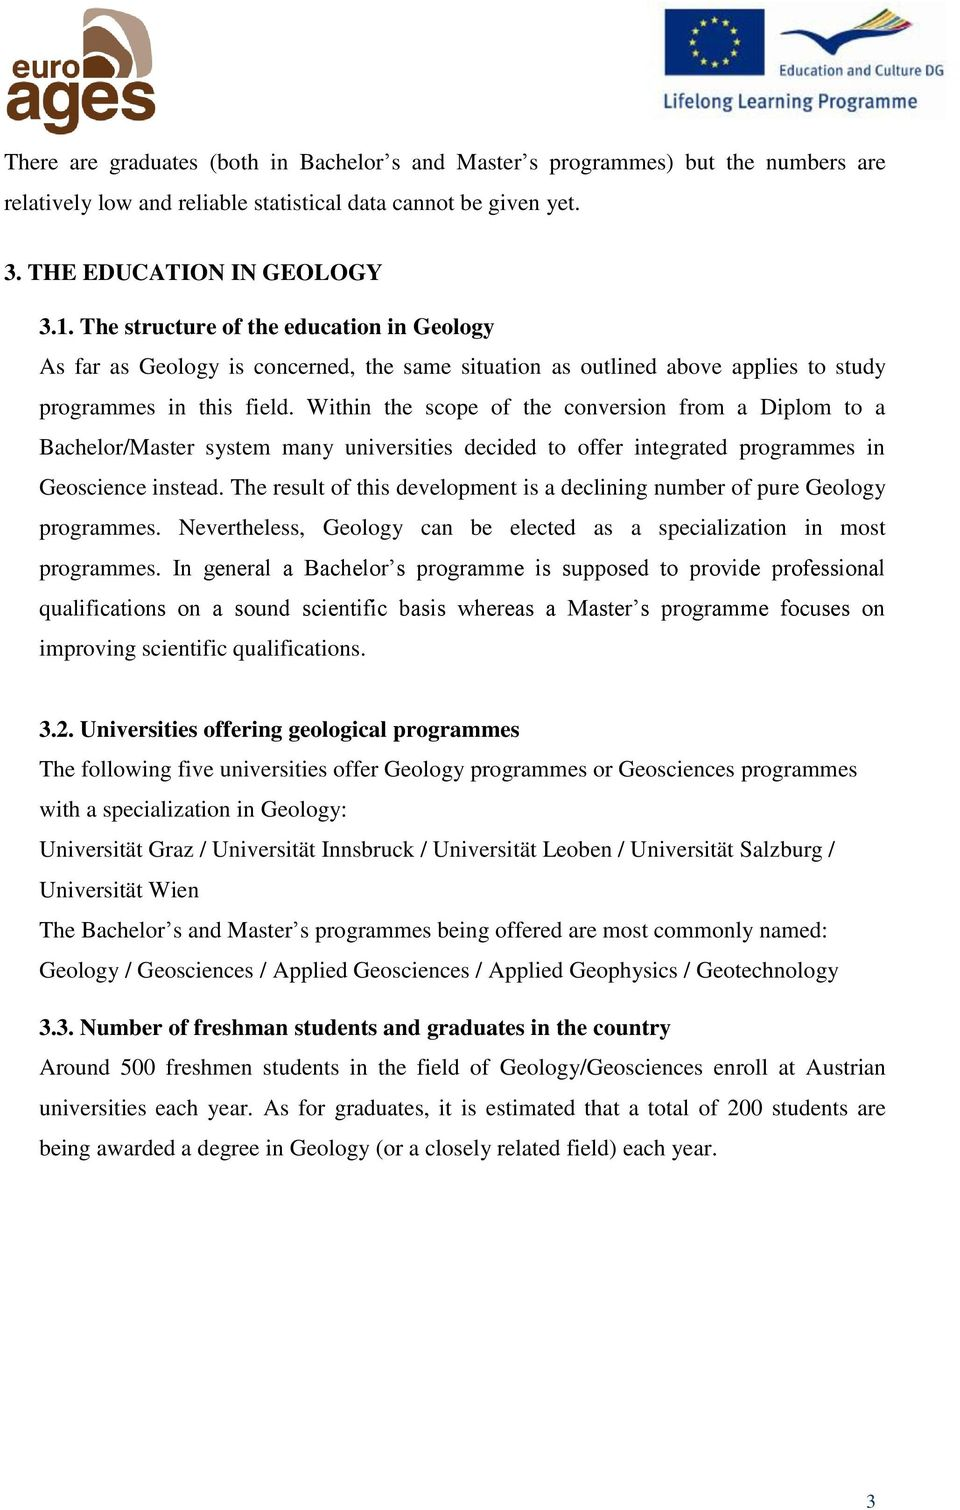 Within the scope of the conversion from a Diplom to a Bachelor/Master system many universities decided to offer integrated programmes in Geoscience instead.